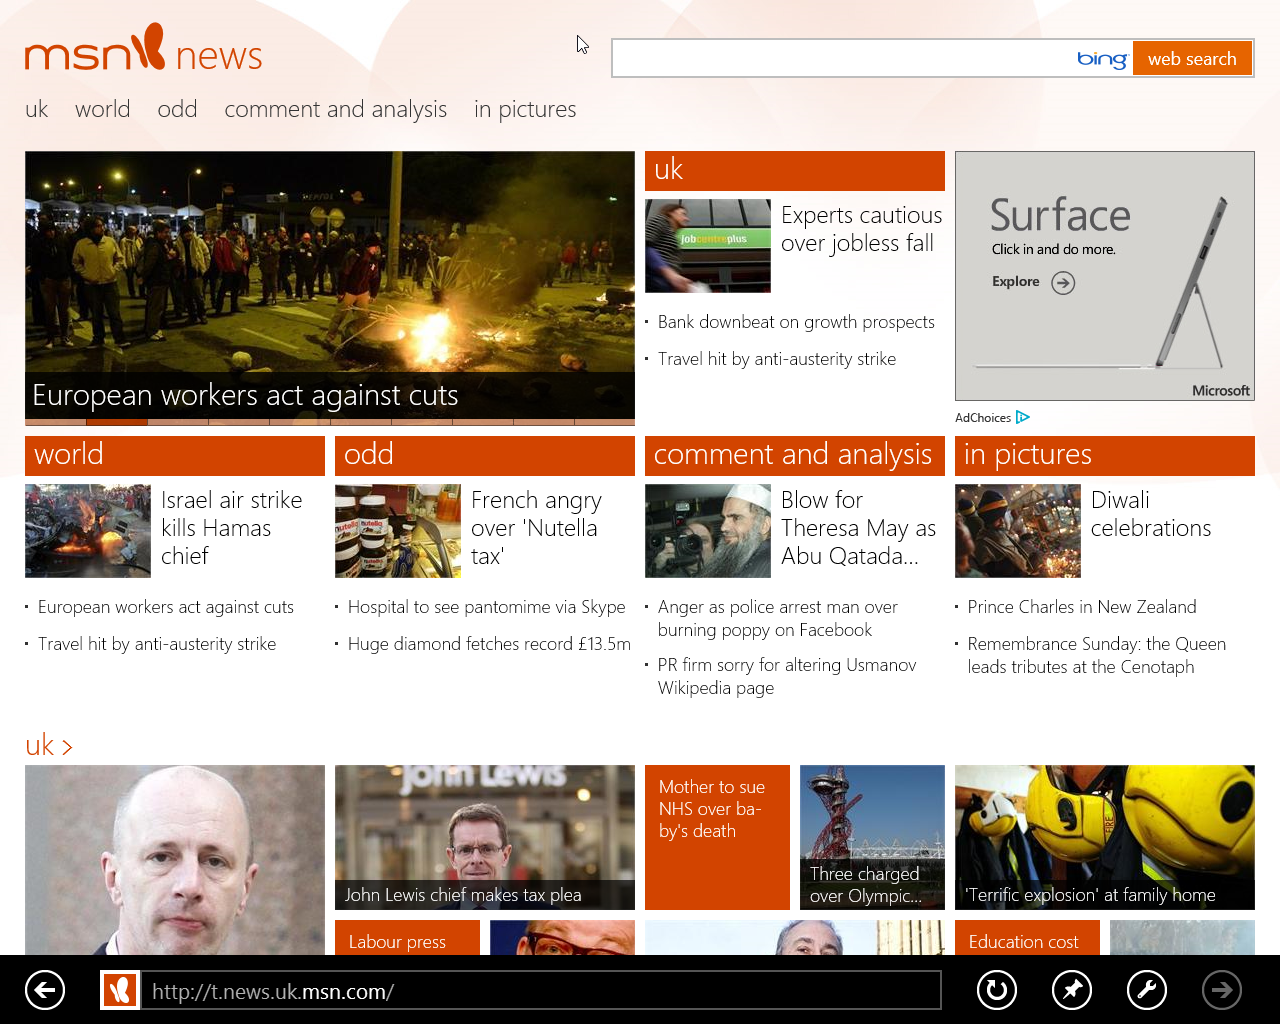 msn news images reverse search